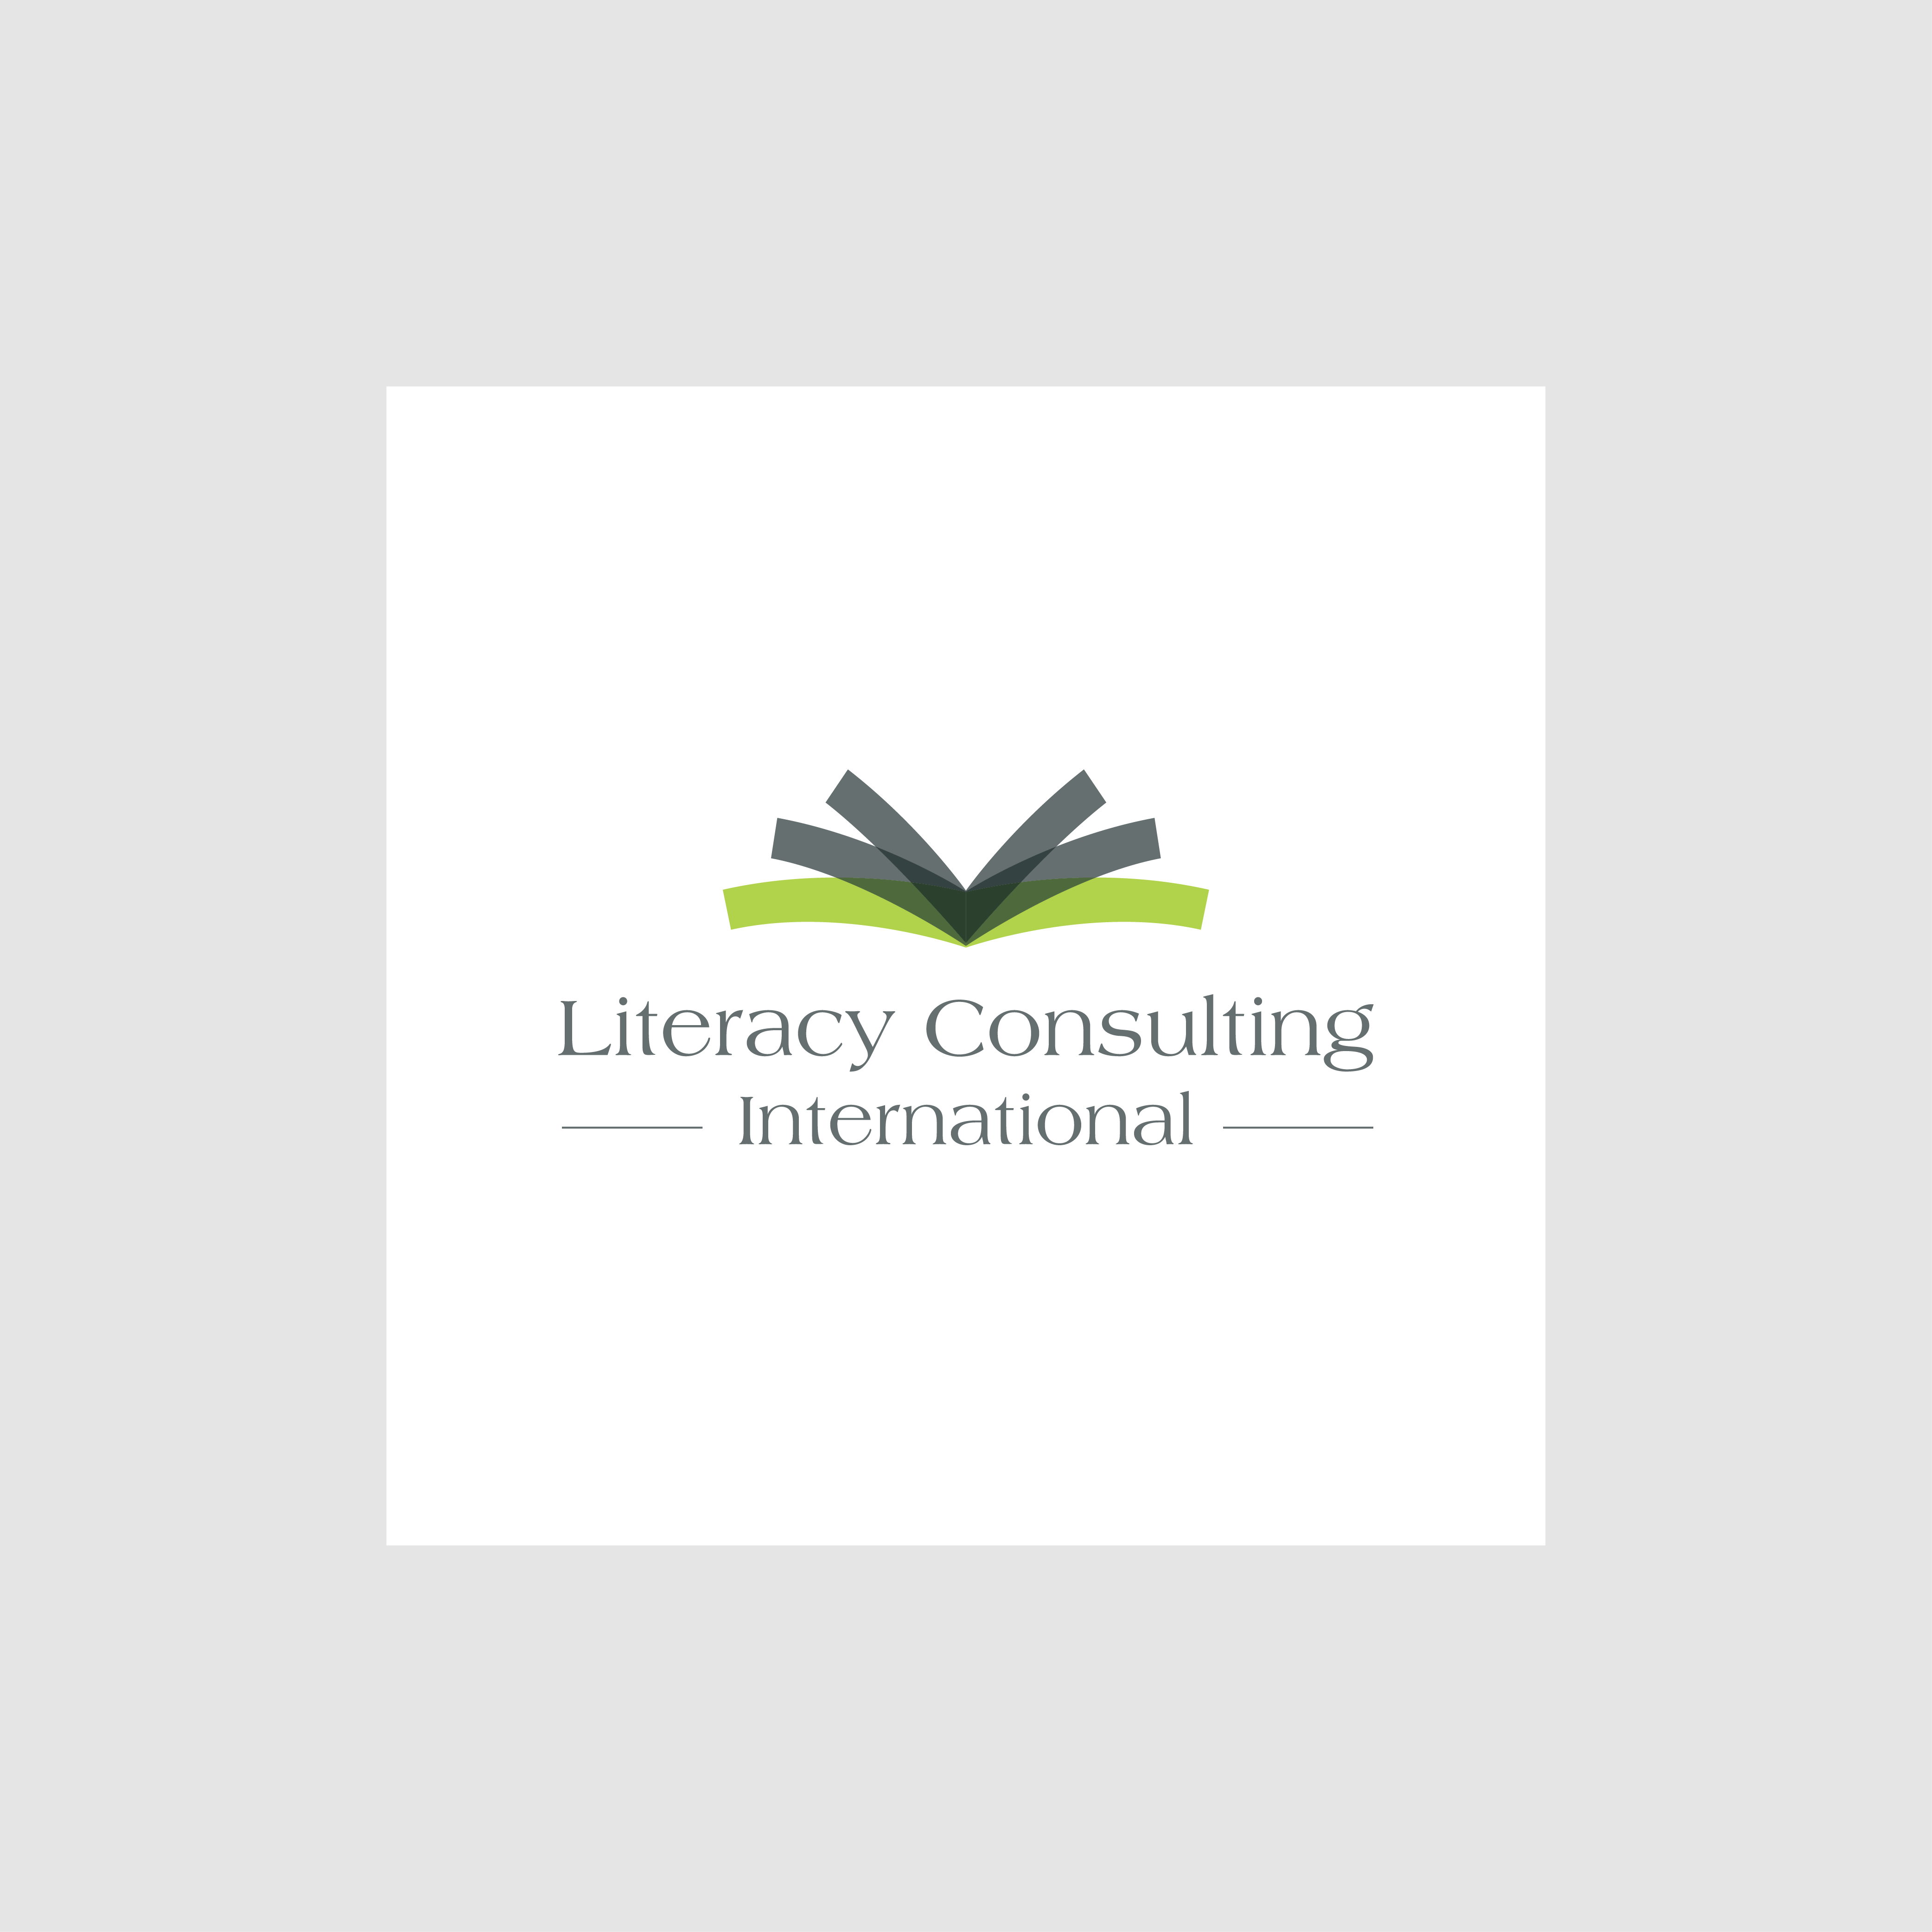 Create an engaging logo for a global consulting firm!